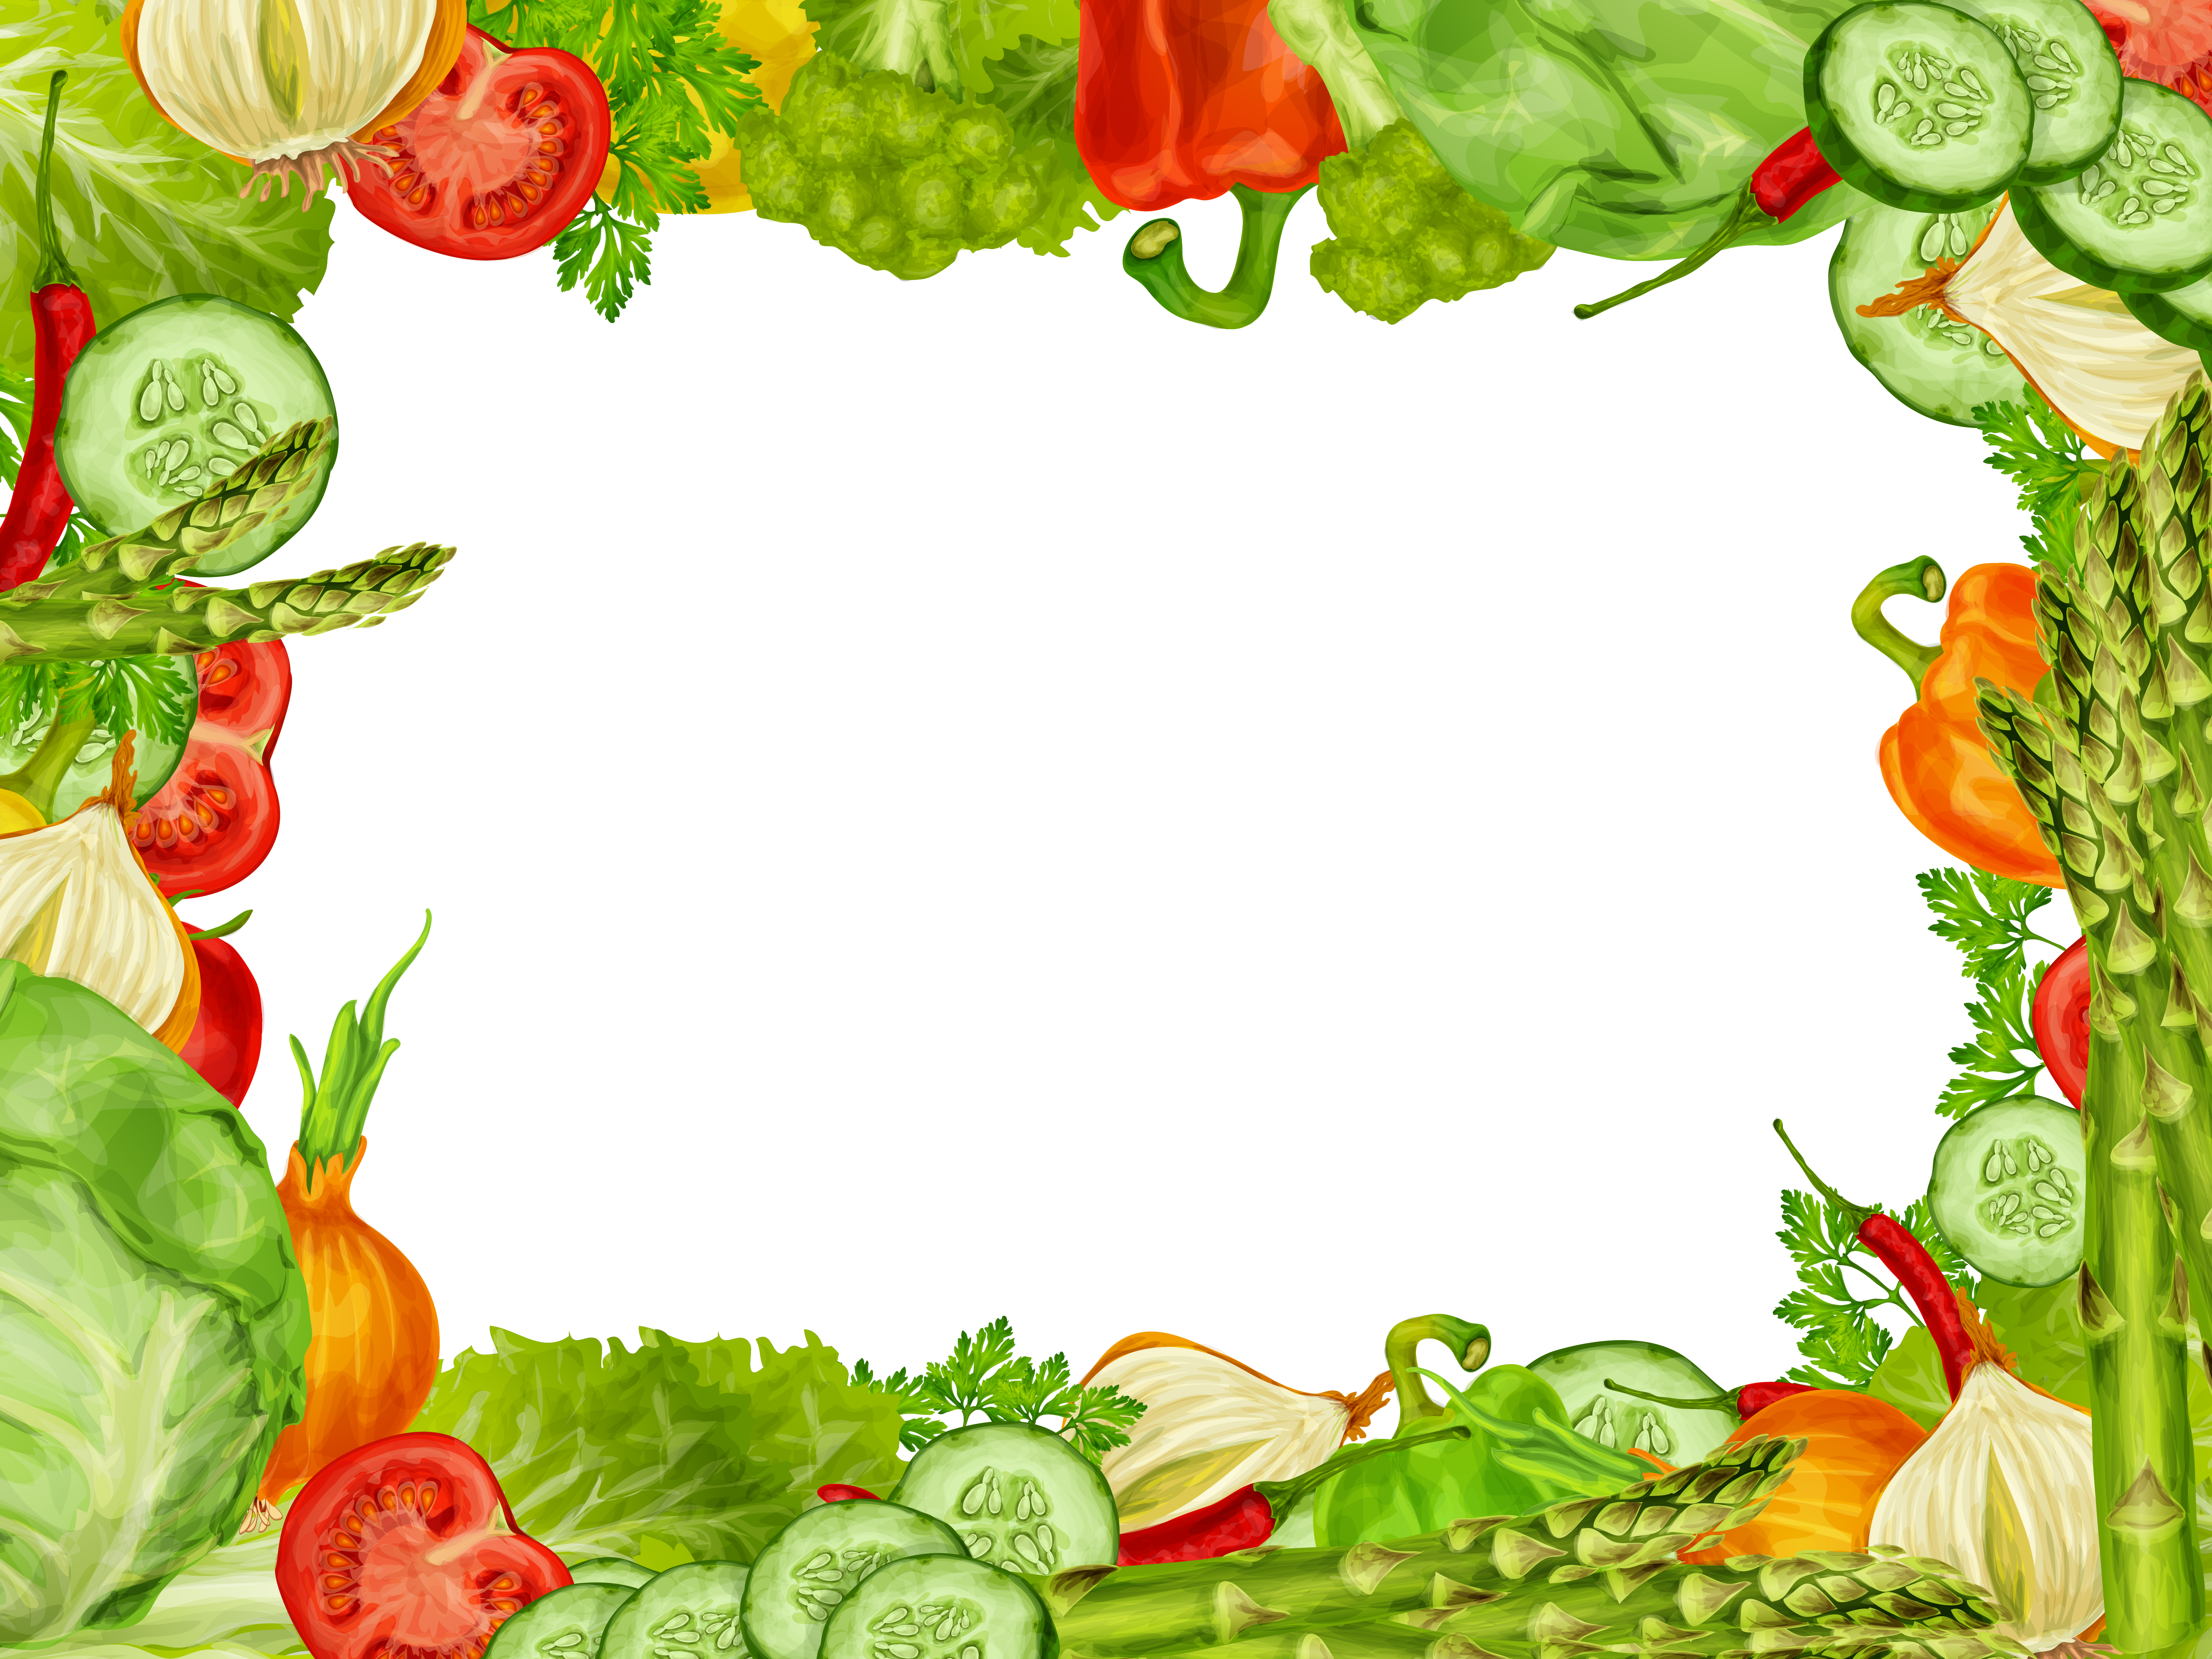 Carrot clipart border vector freeuse download Vegetable Border Free Vector Art - (737 Free Downloads) vector freeuse download